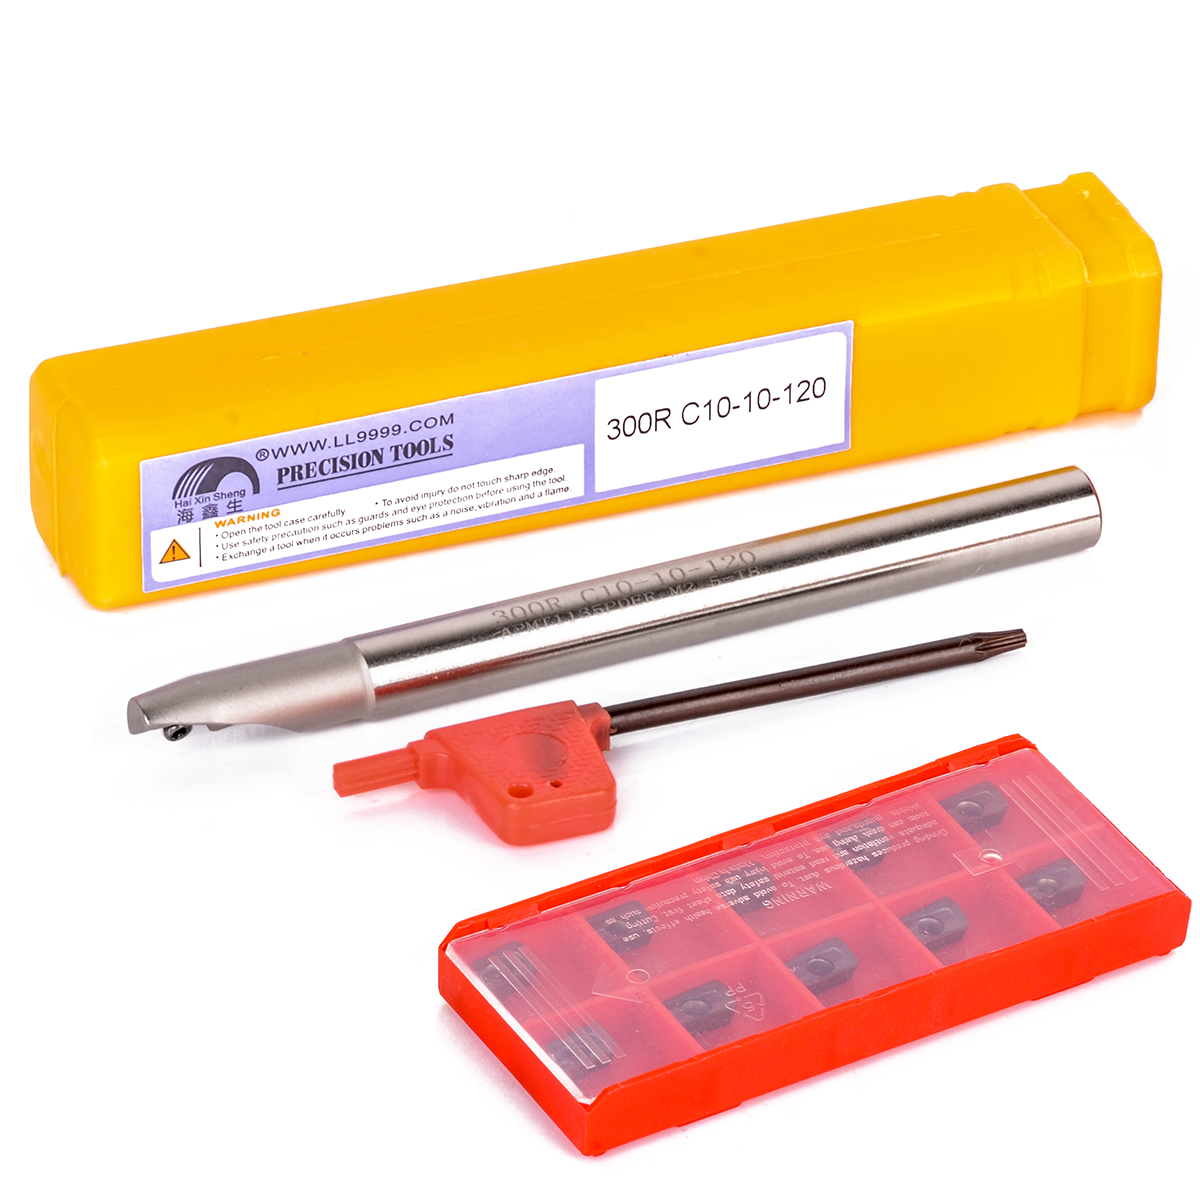 1pc BAP 300R C10-10-100 Tool Holder + 10pcs APMT1135PDER Carbide Inserts with Wrench For CNC Milling Tool